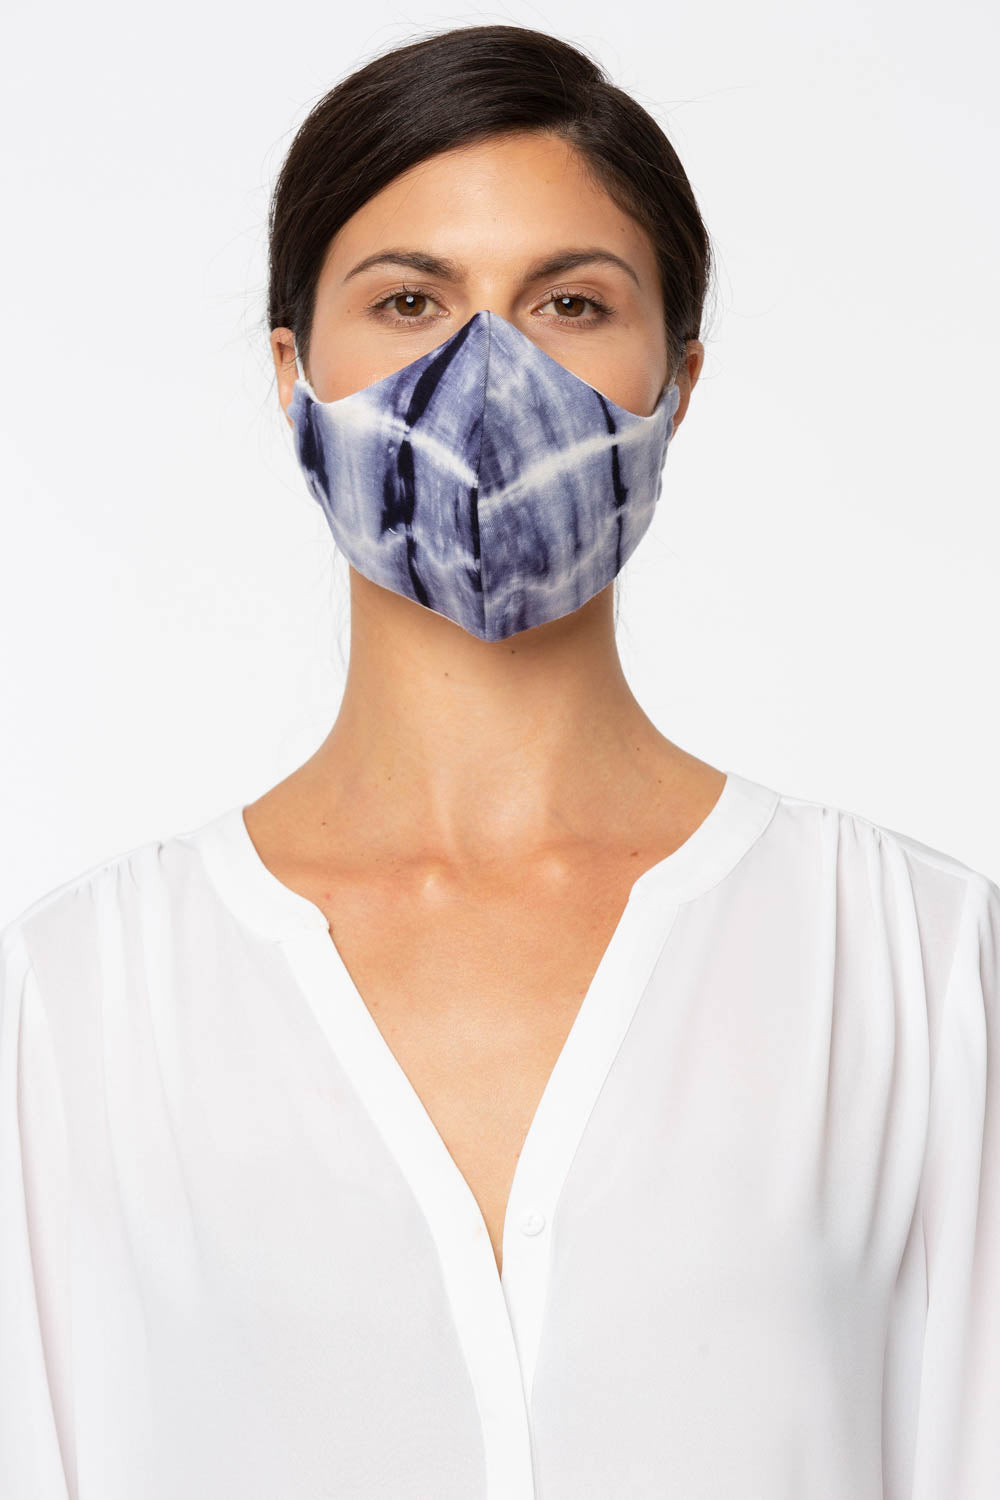 Protective Face Mask 4-Pack - Assorted